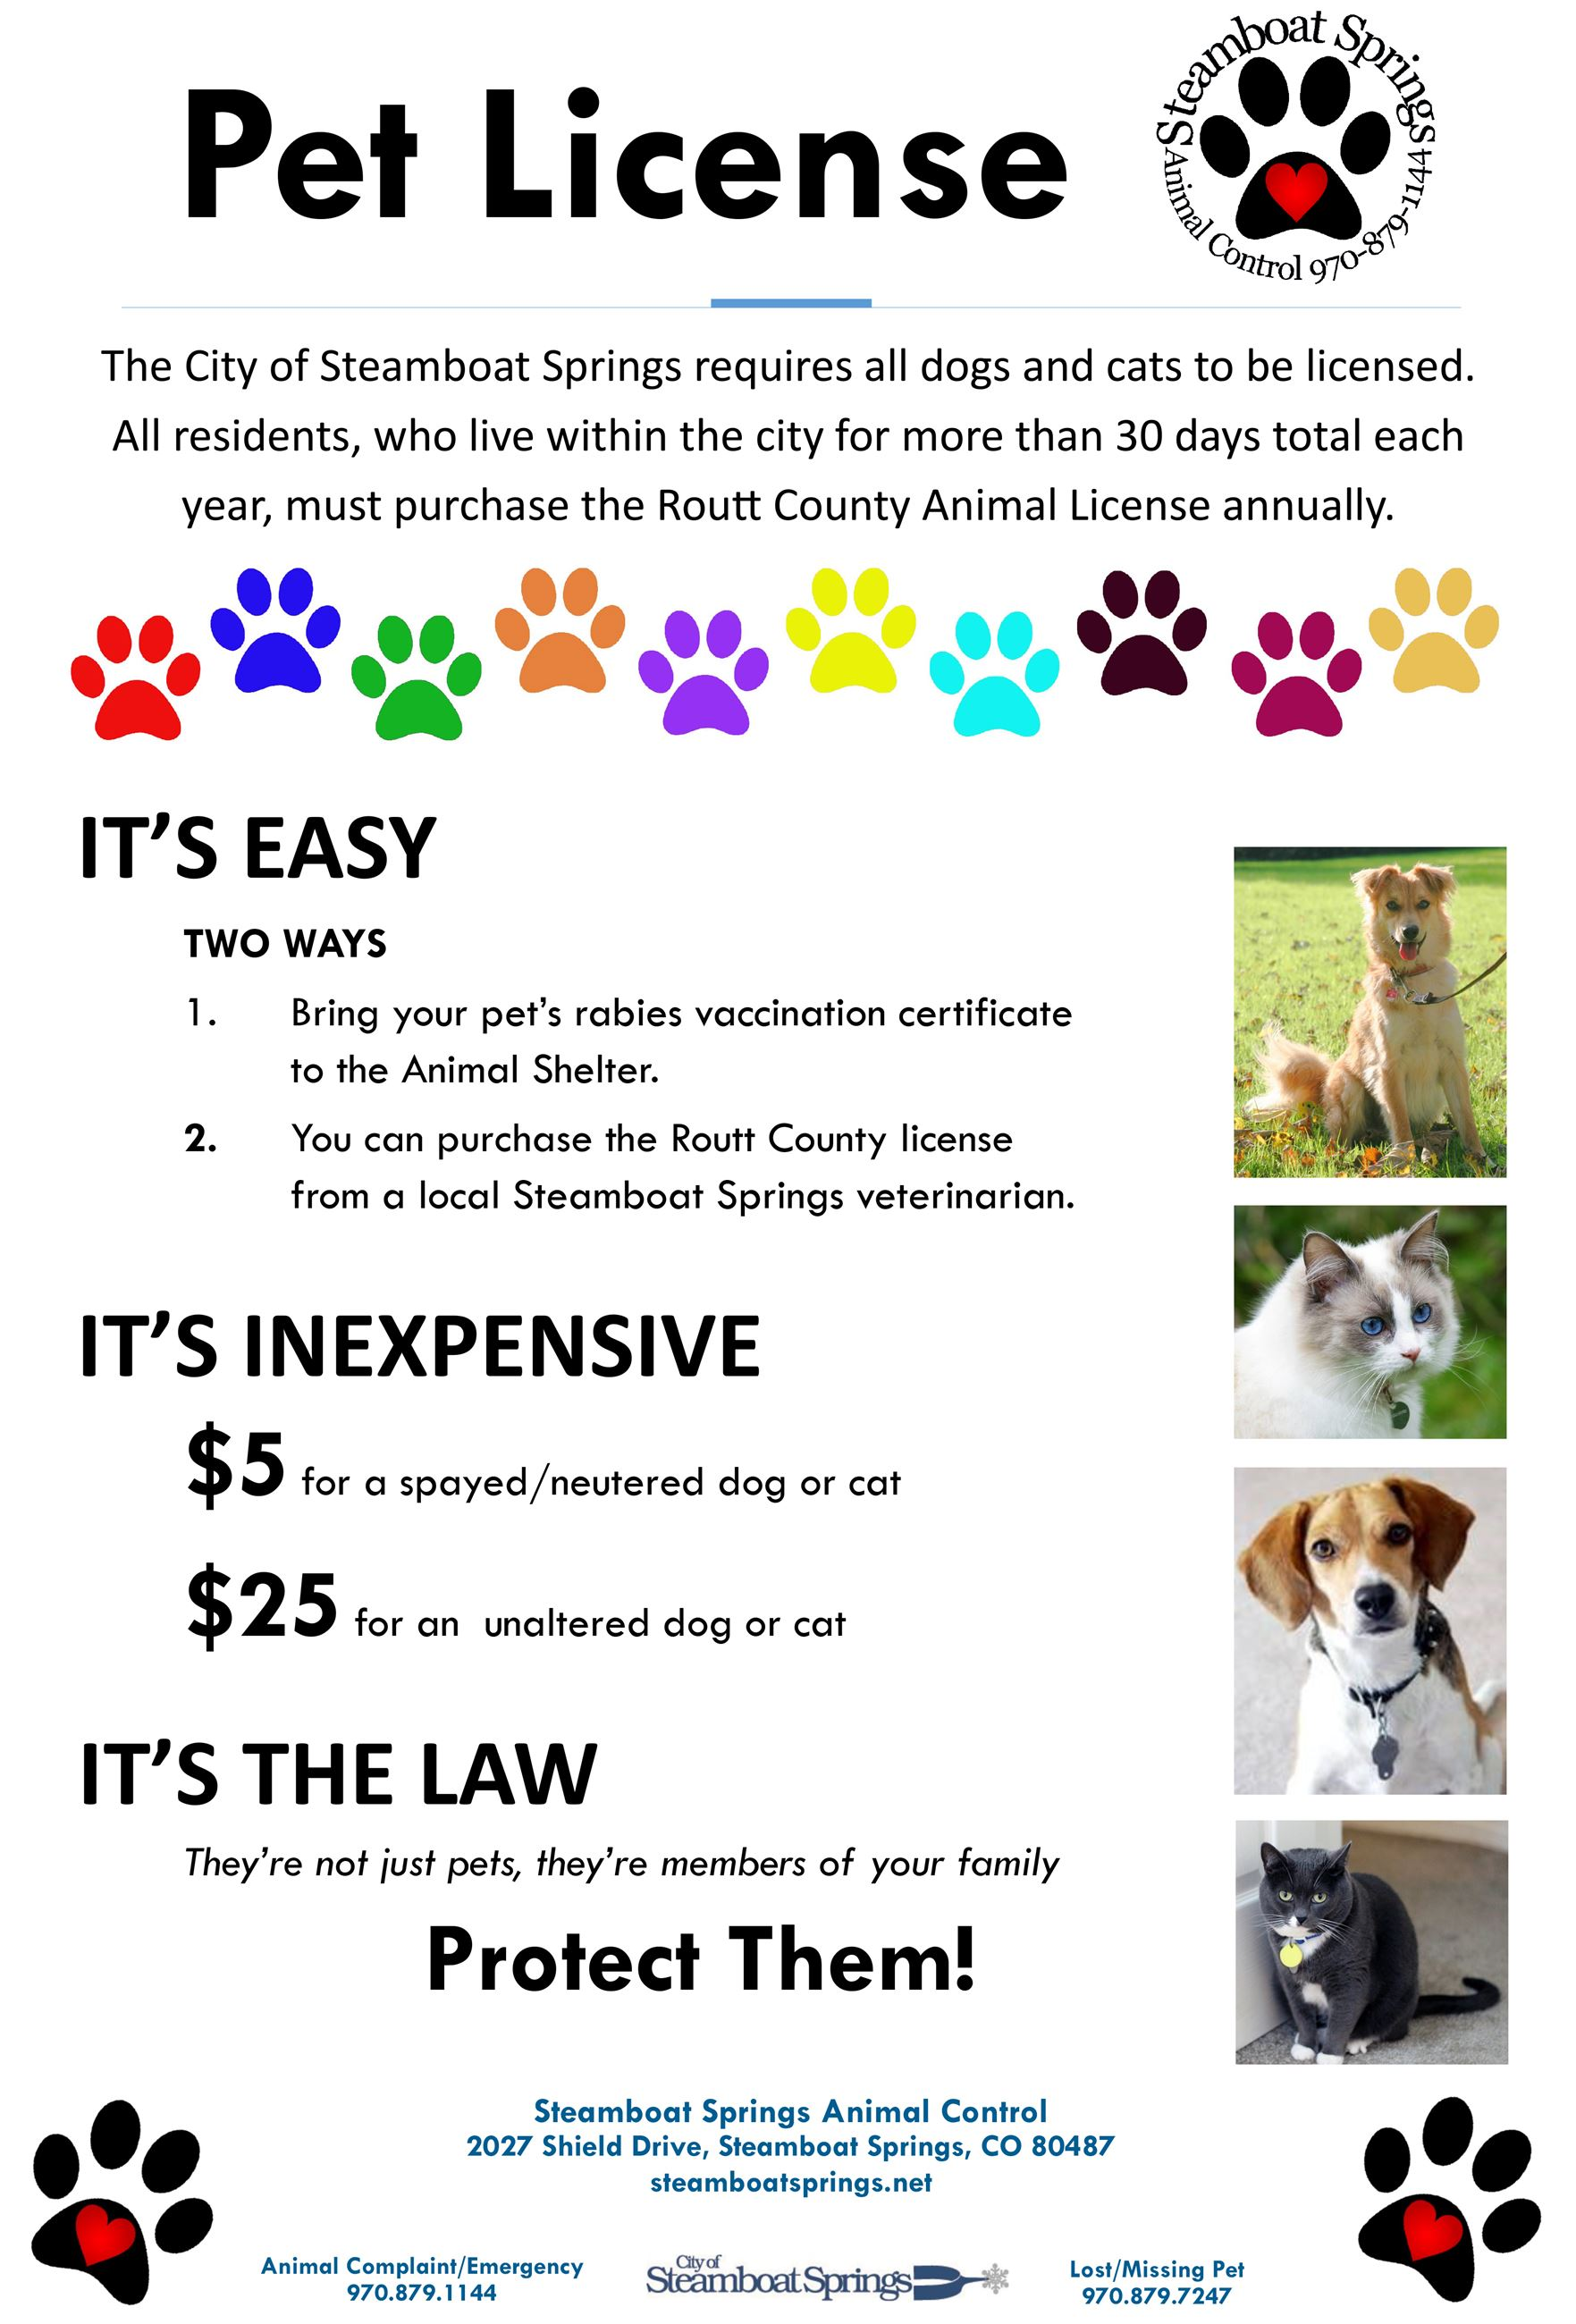 Pet Licenses NewsFlash